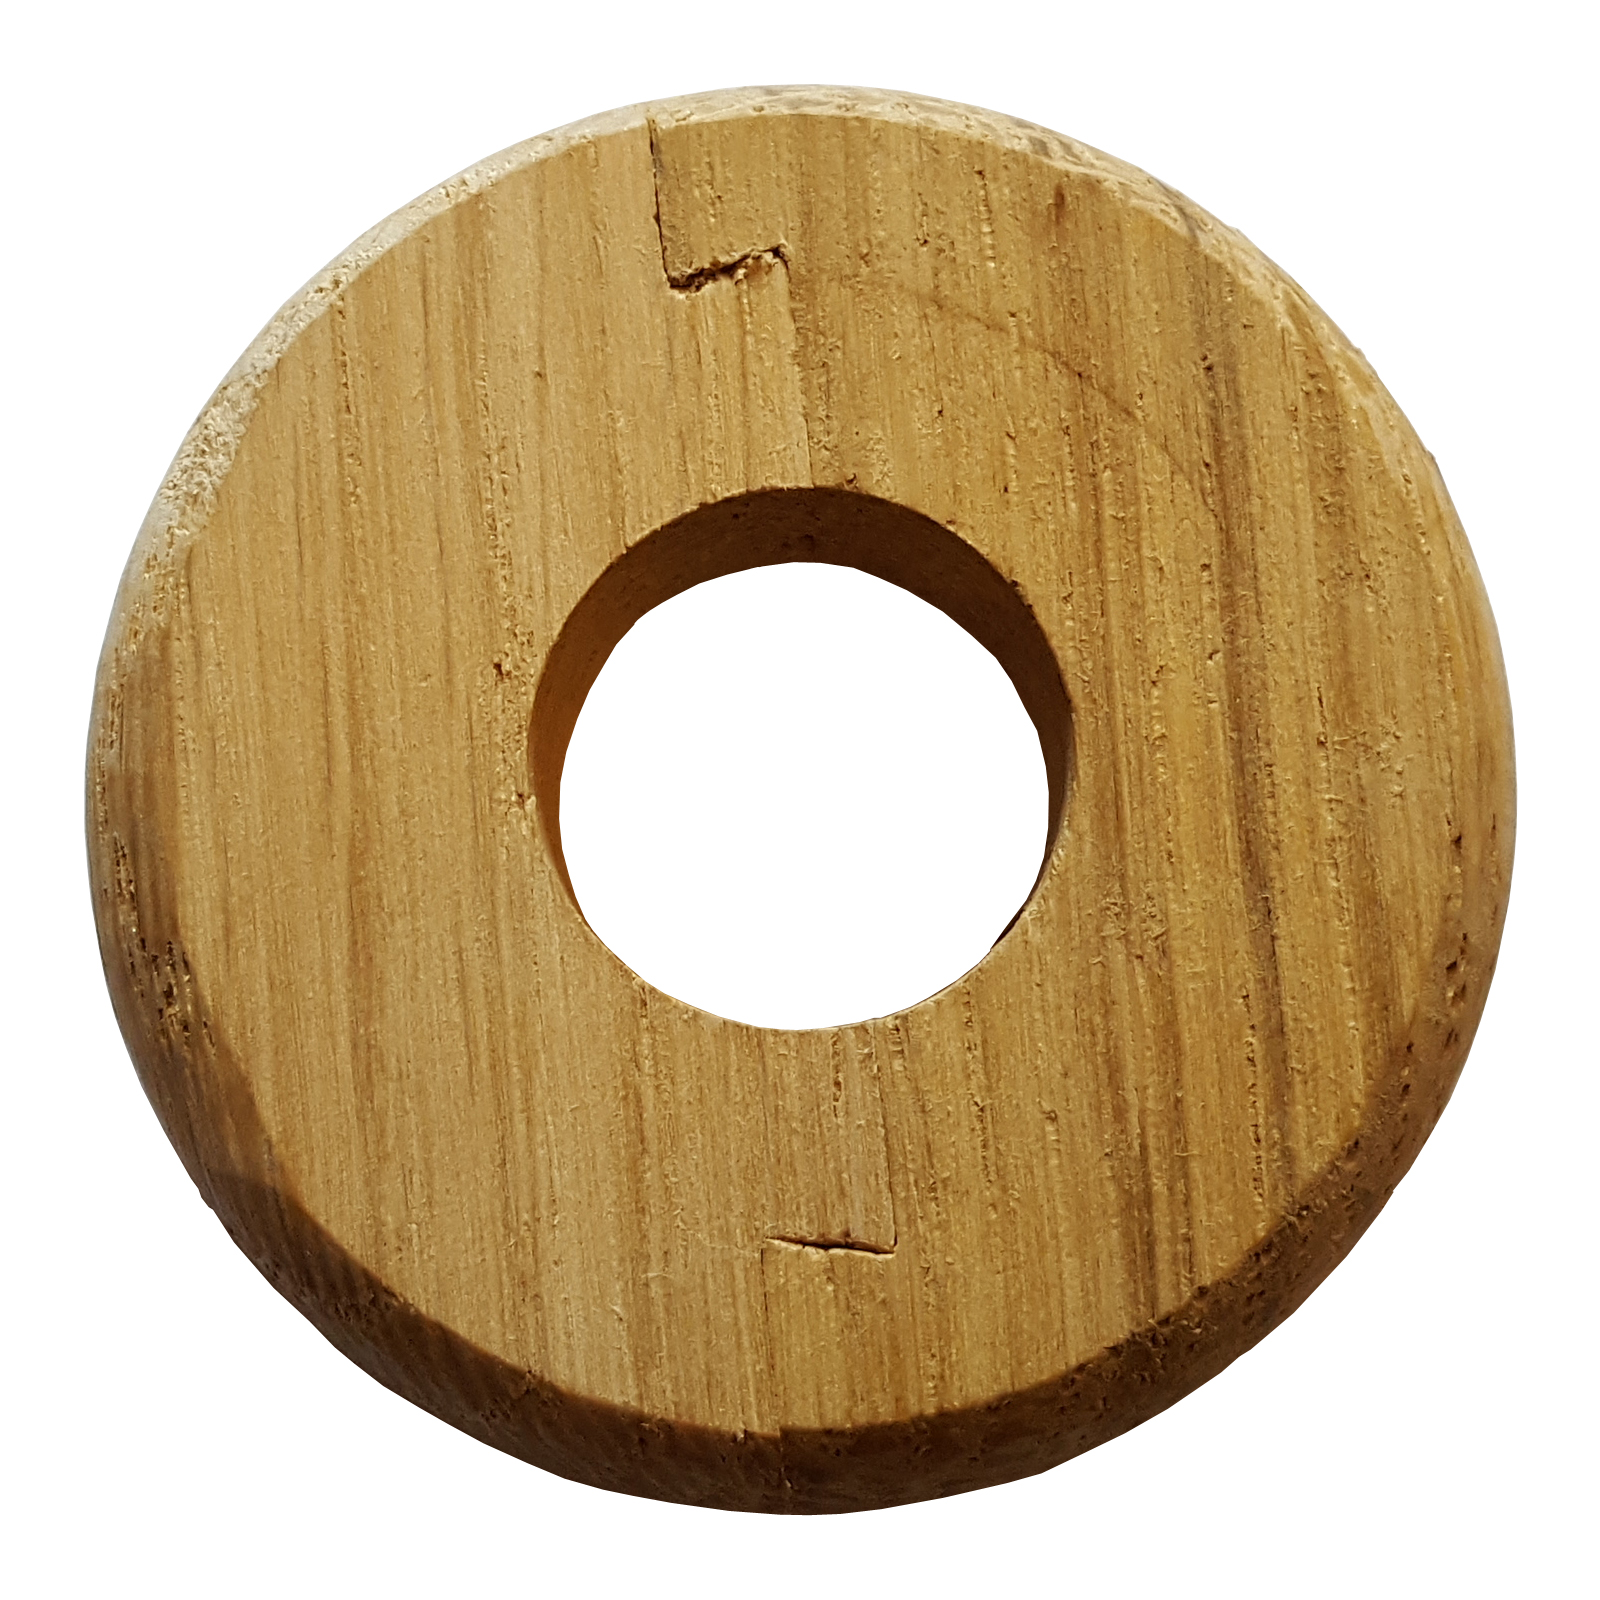 Wooden Rose Timber Collar 15mm Pipe Hole Cover Diameter Small Nice Looking